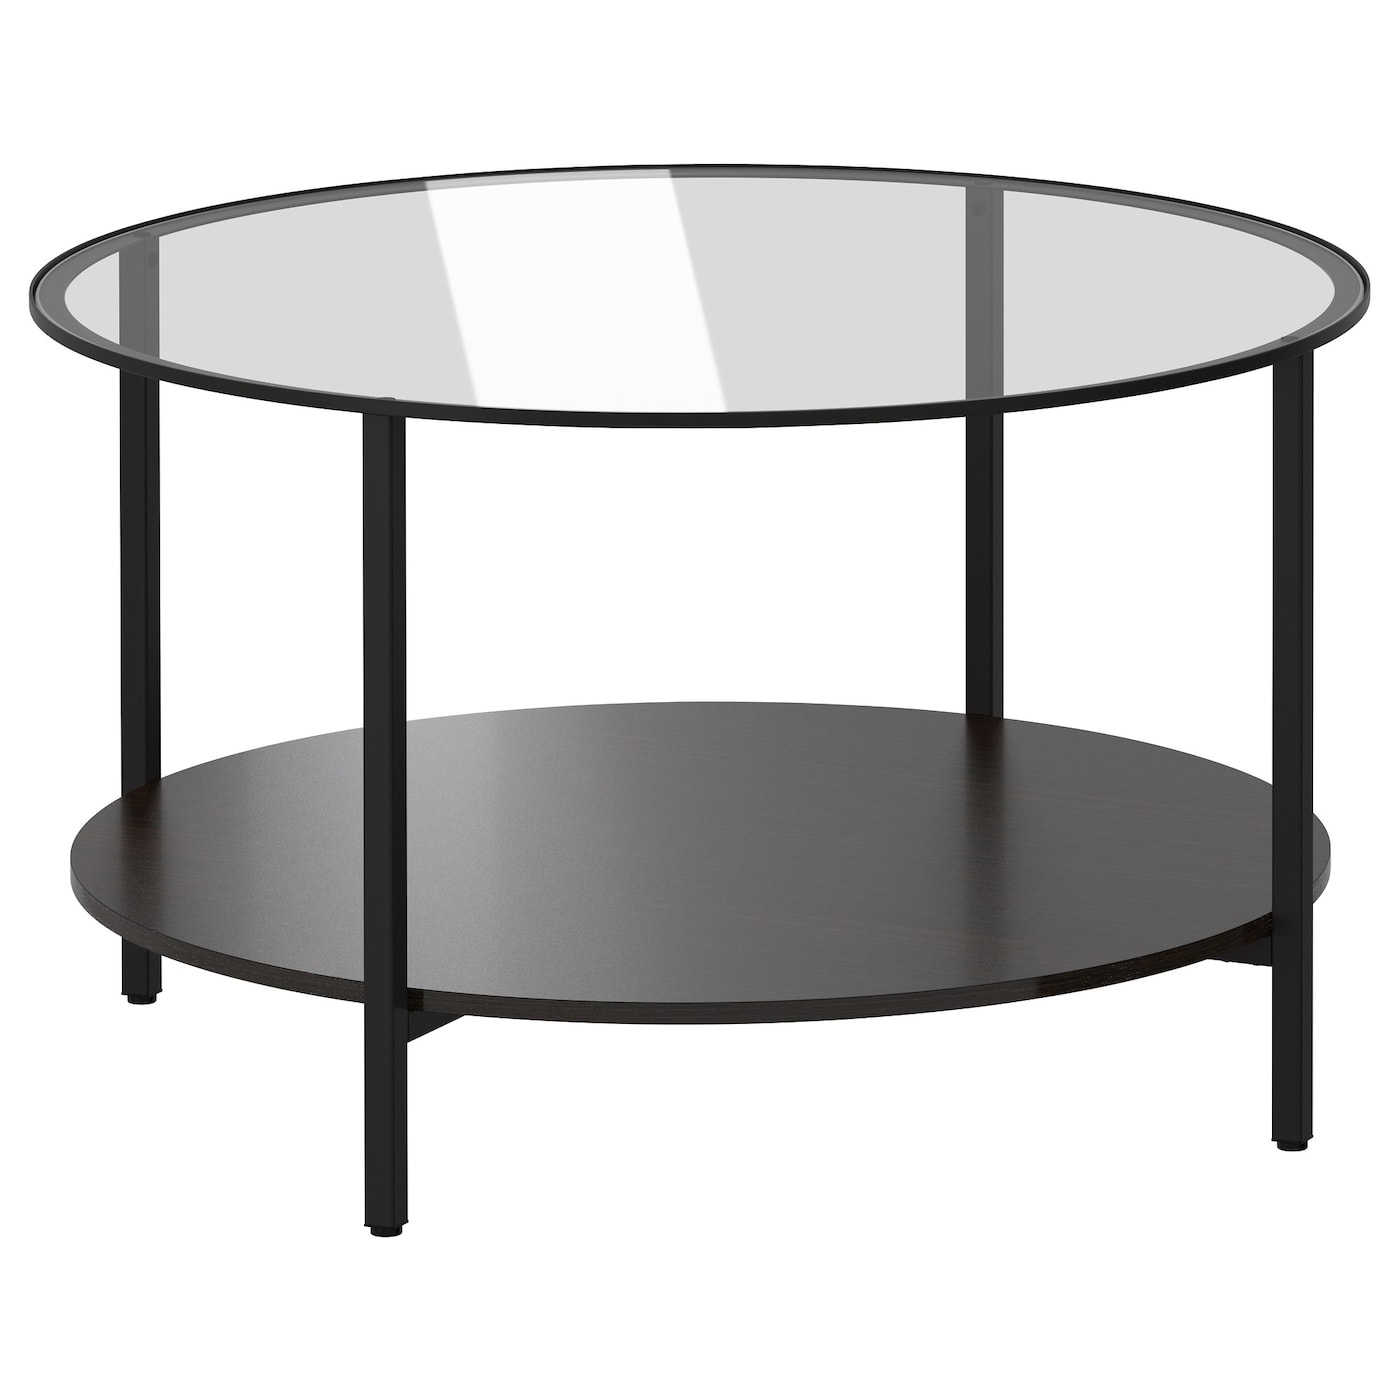 Vittsj coffee table black brown glass 75 cm ikea for Ikea drawing desk